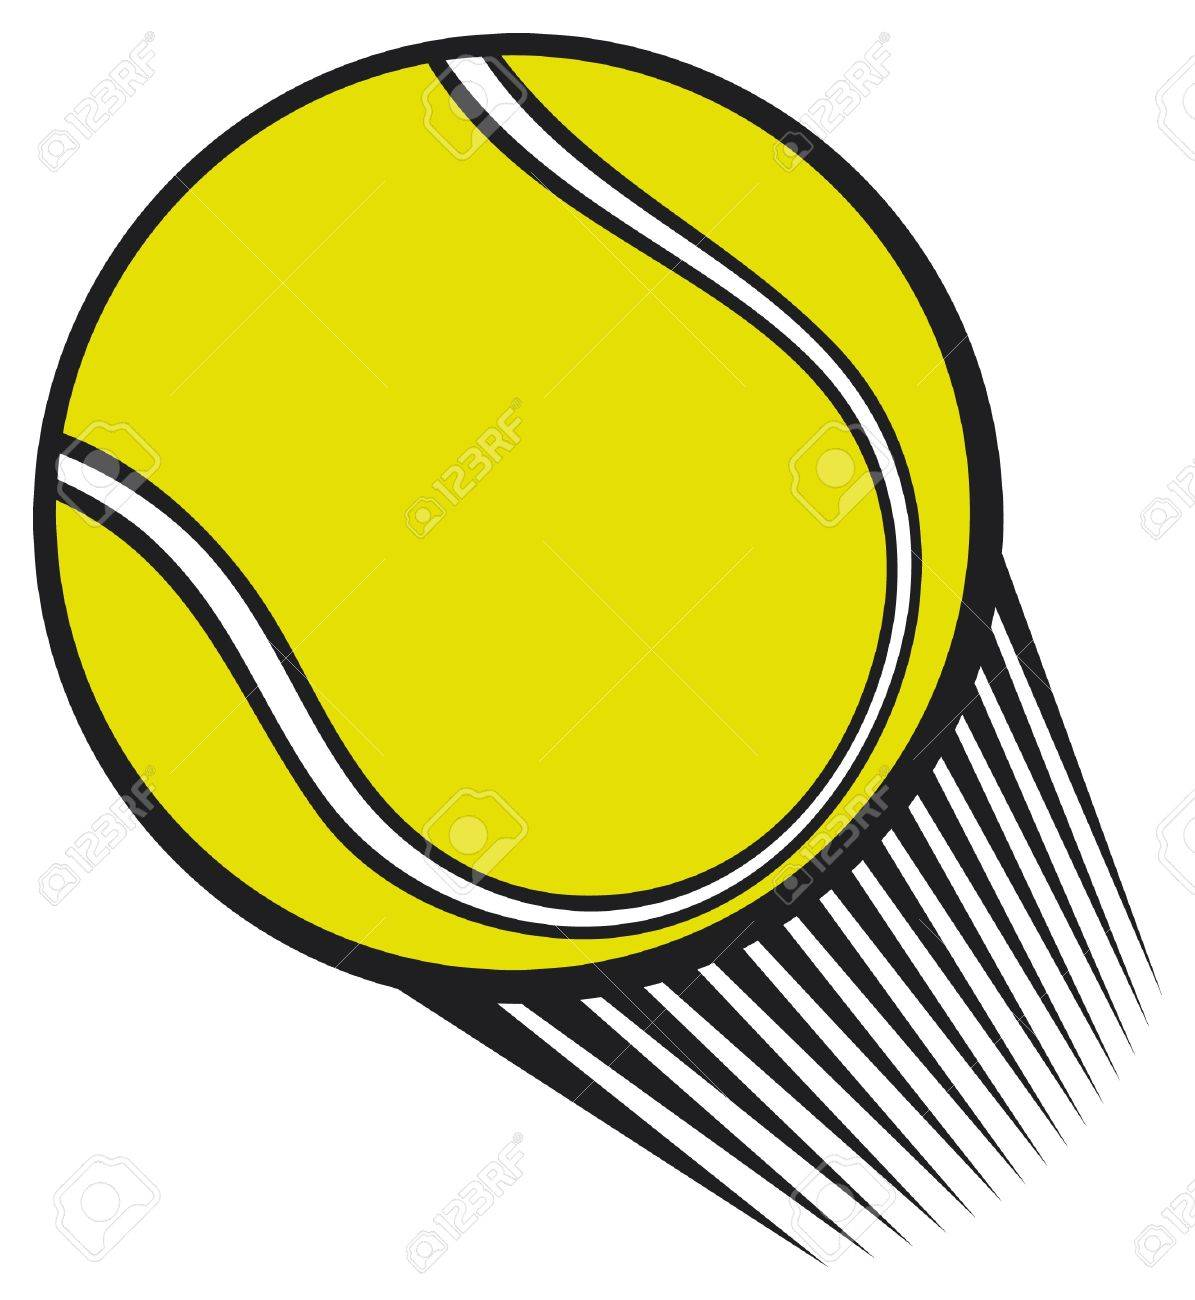 1195x1300 Tennis Ball Royalty Free Cliparts, Vectors, And Stock Illustration